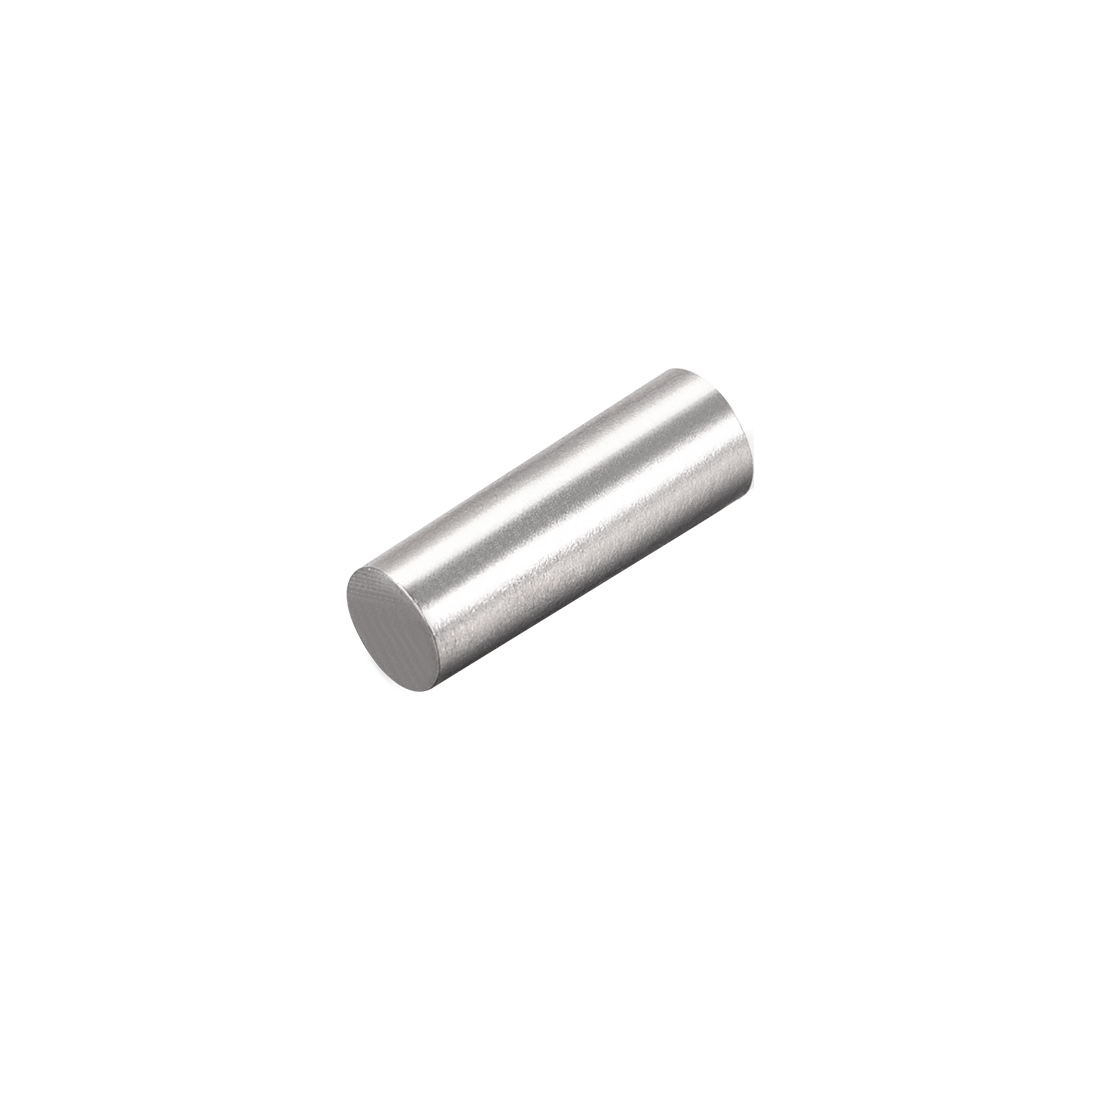 4mm x 10mm 1:50 Taper Pin 304 Stainless Steel Shelf Support Pin Fasten Elements